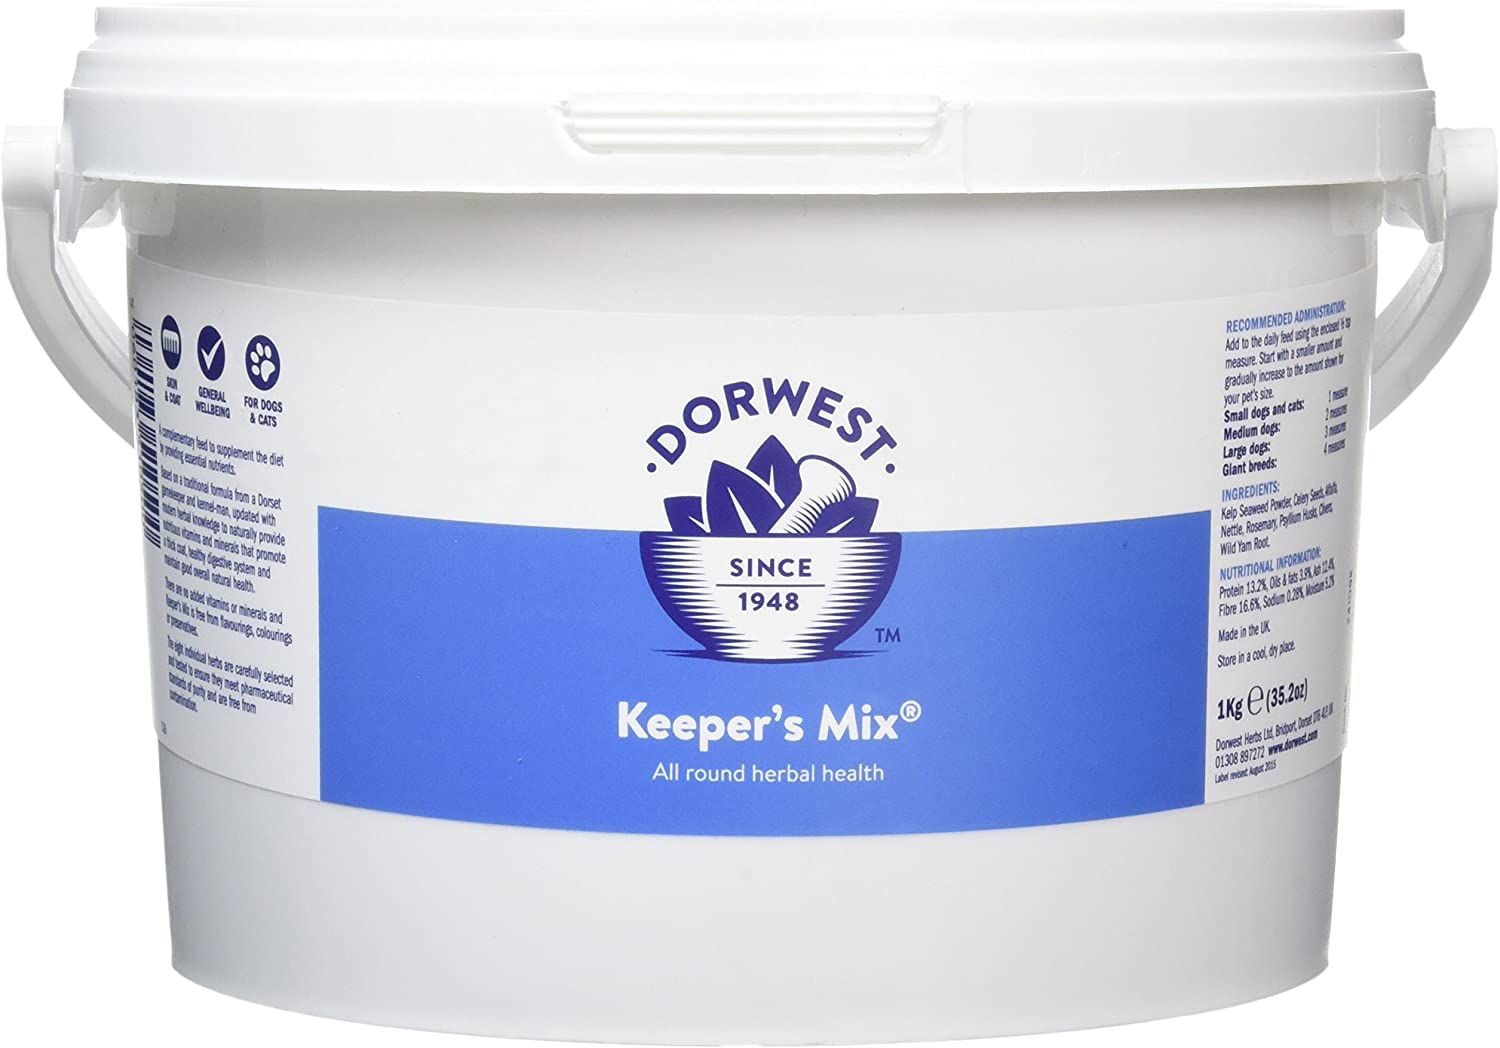 Dorwest Herbs Keepers Mix Powder for Dogs and Cats 1kg